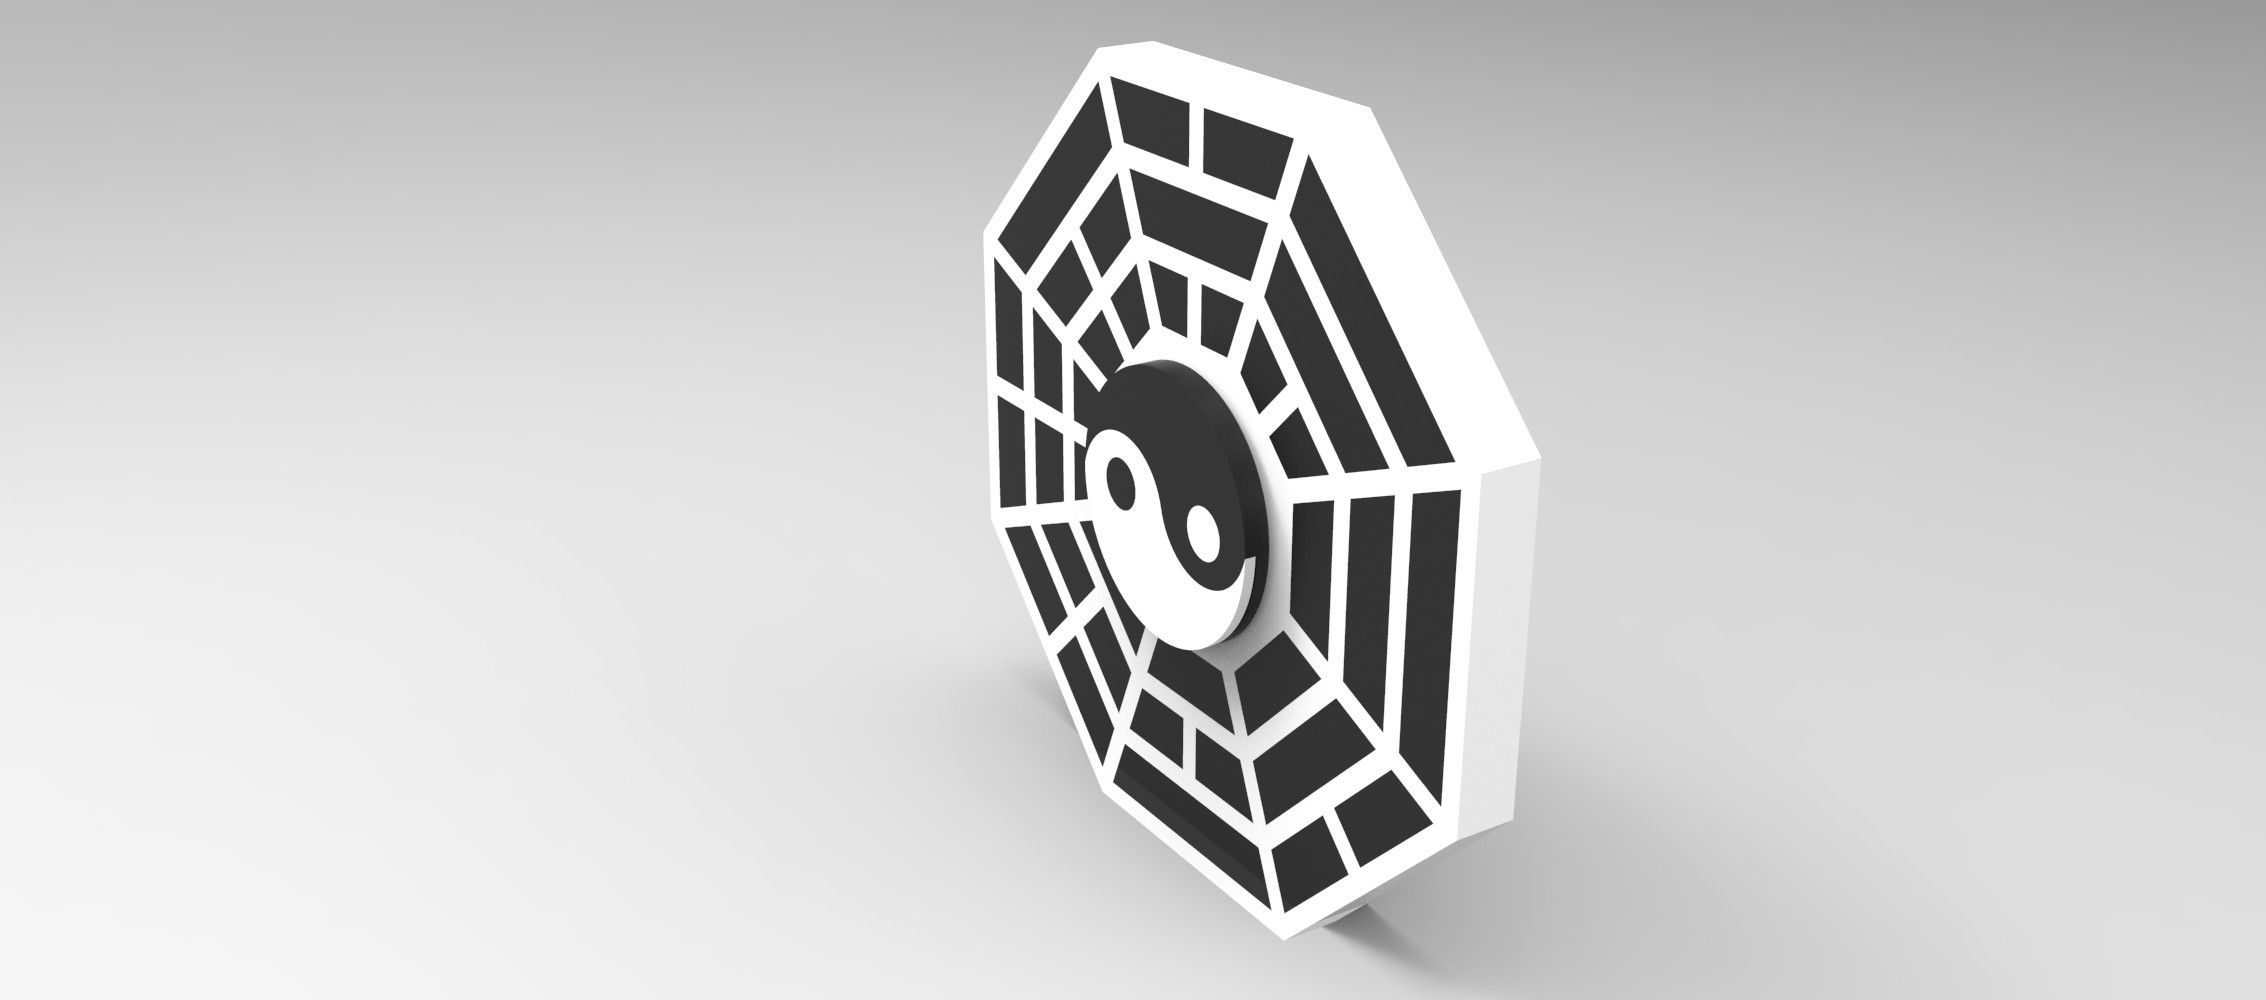 untitled.885.jpg Download STL file Hand Spinner Yin Yang • 3D printing model, Guich